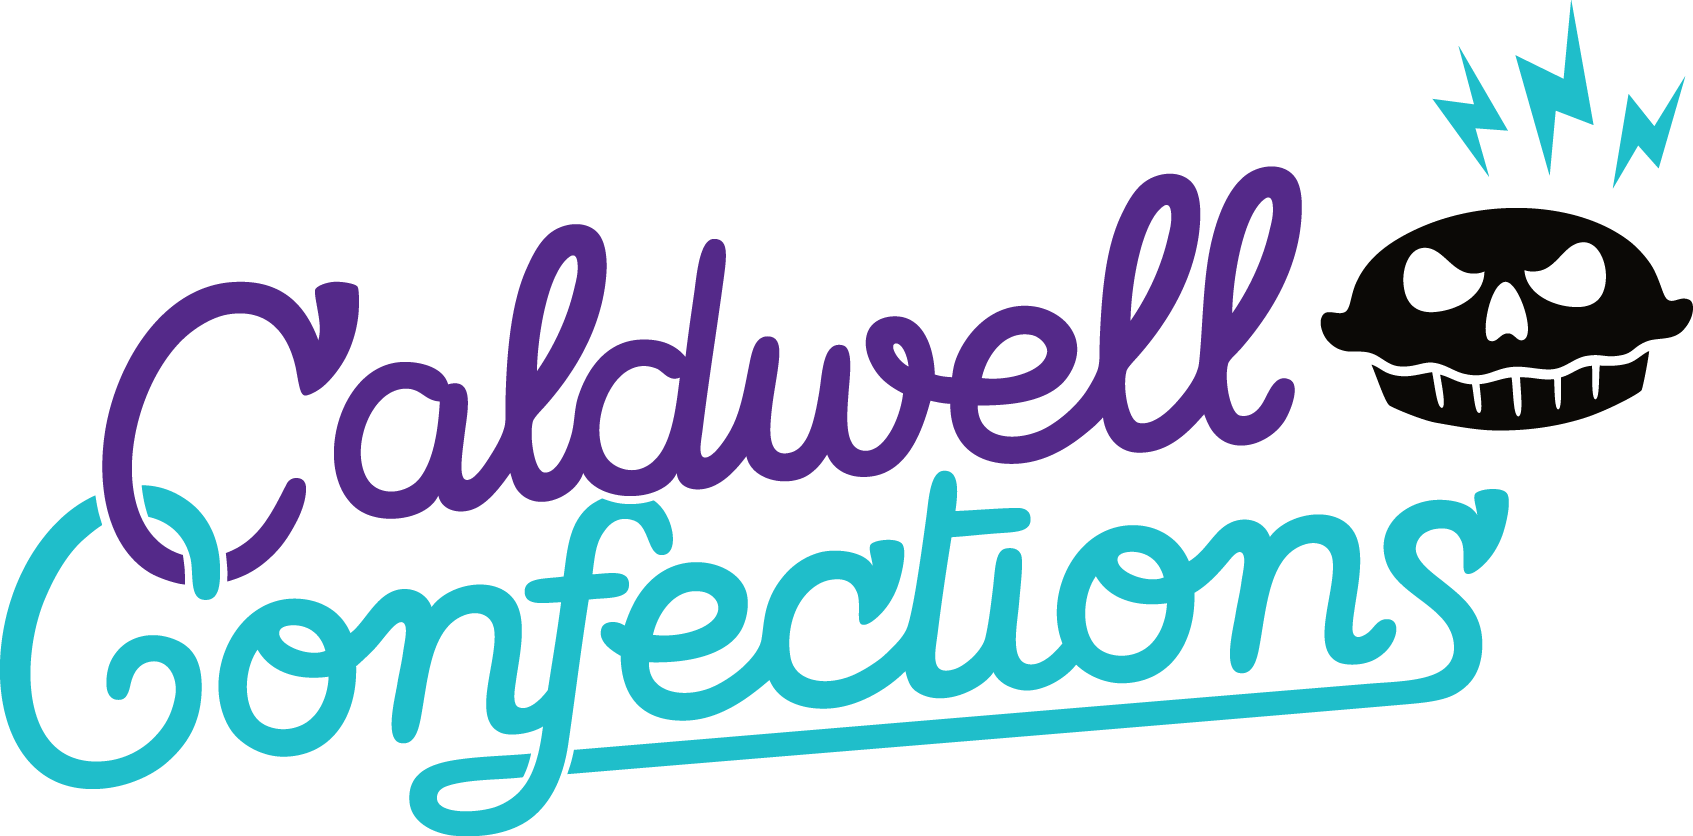 CaldwellConfections_4c_stacked.png